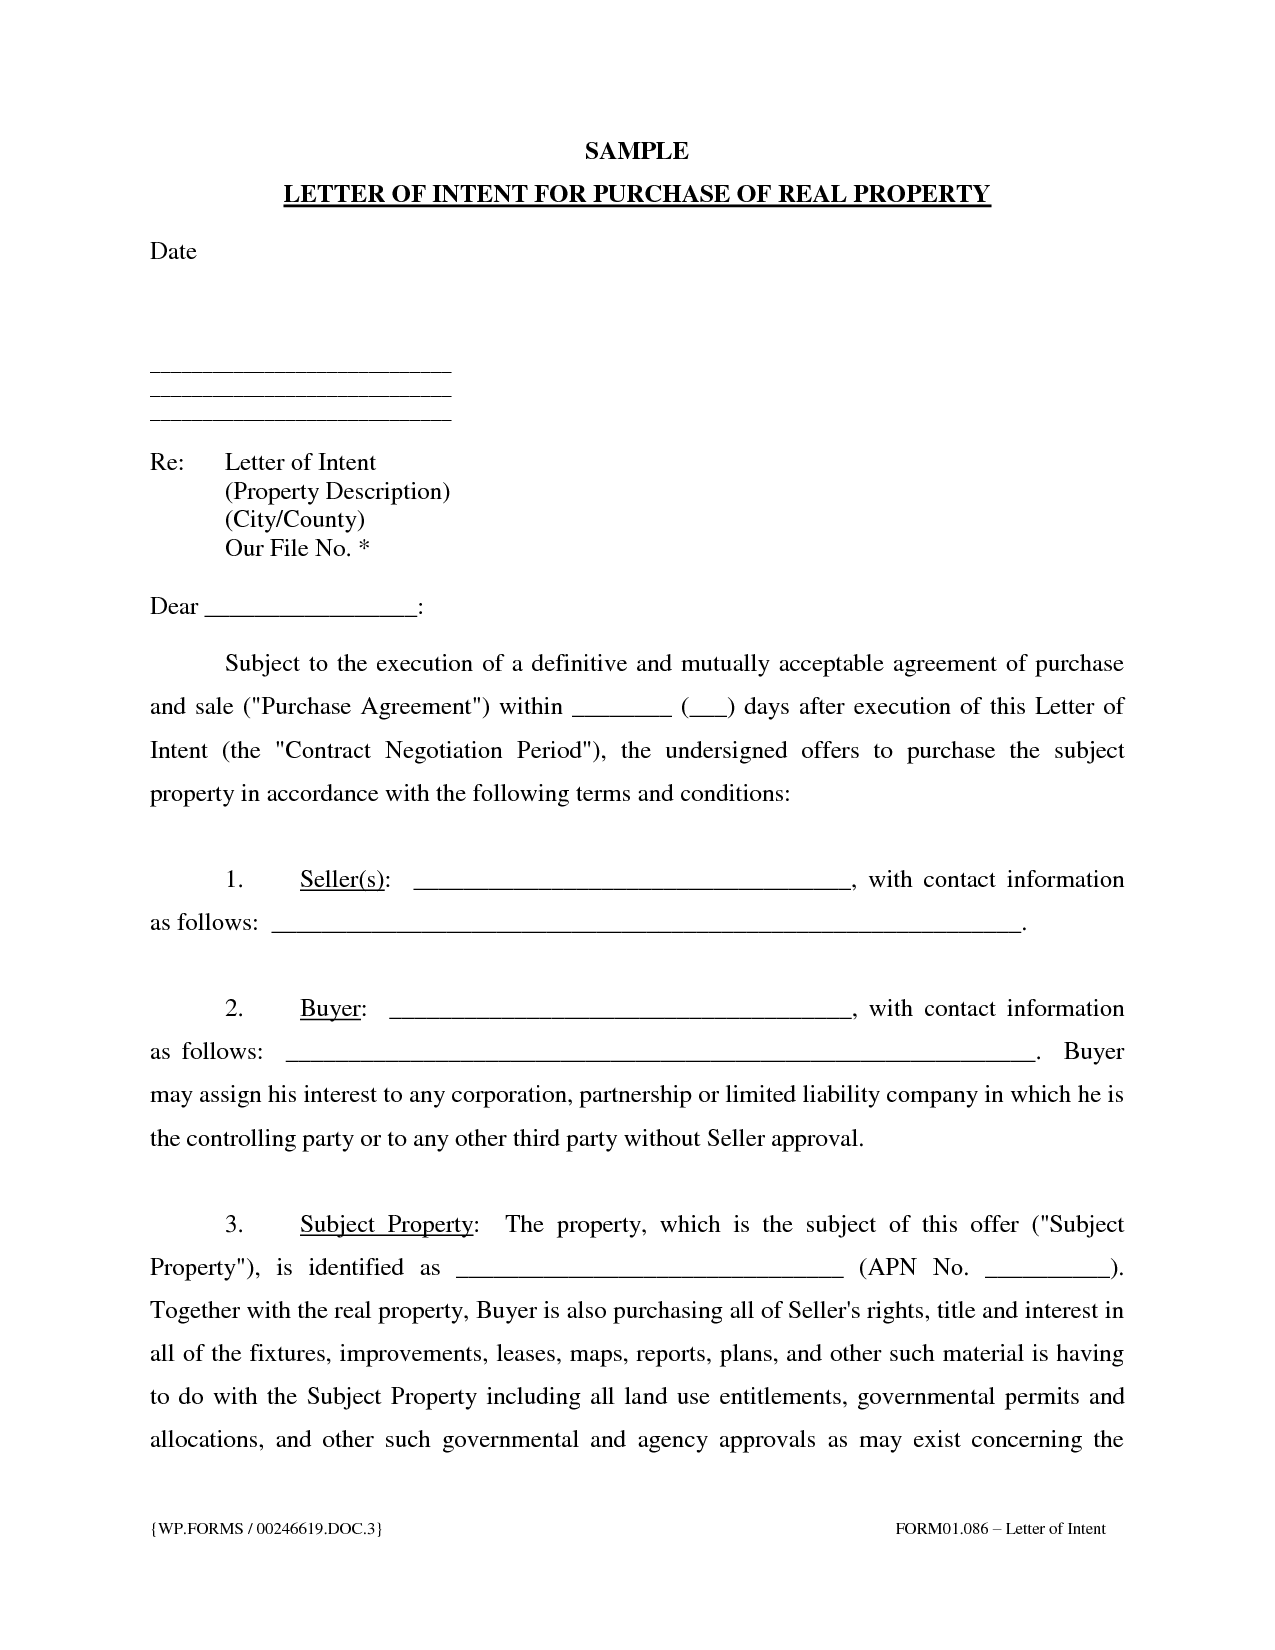 letter of intent to purchase sample letter of intent to purchase real estate free 1406